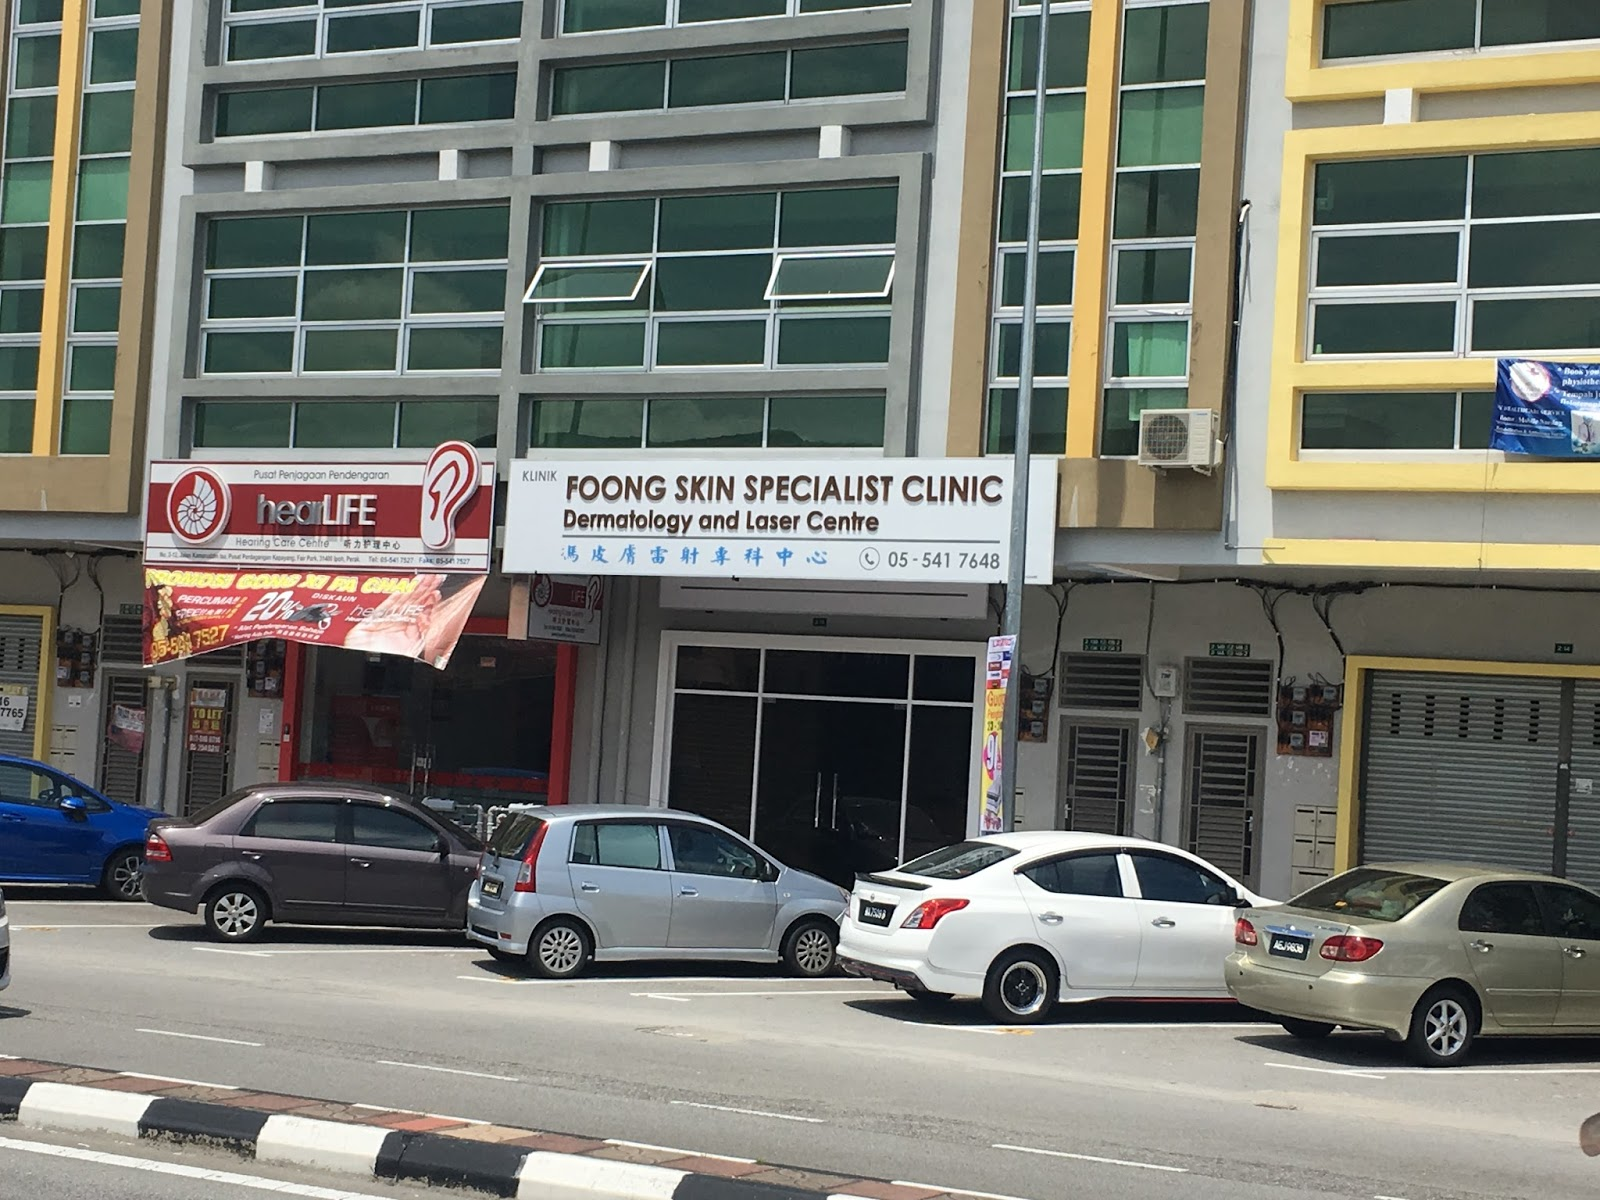 Foong Skin Specialist Clinic Dermatology And Laser Center